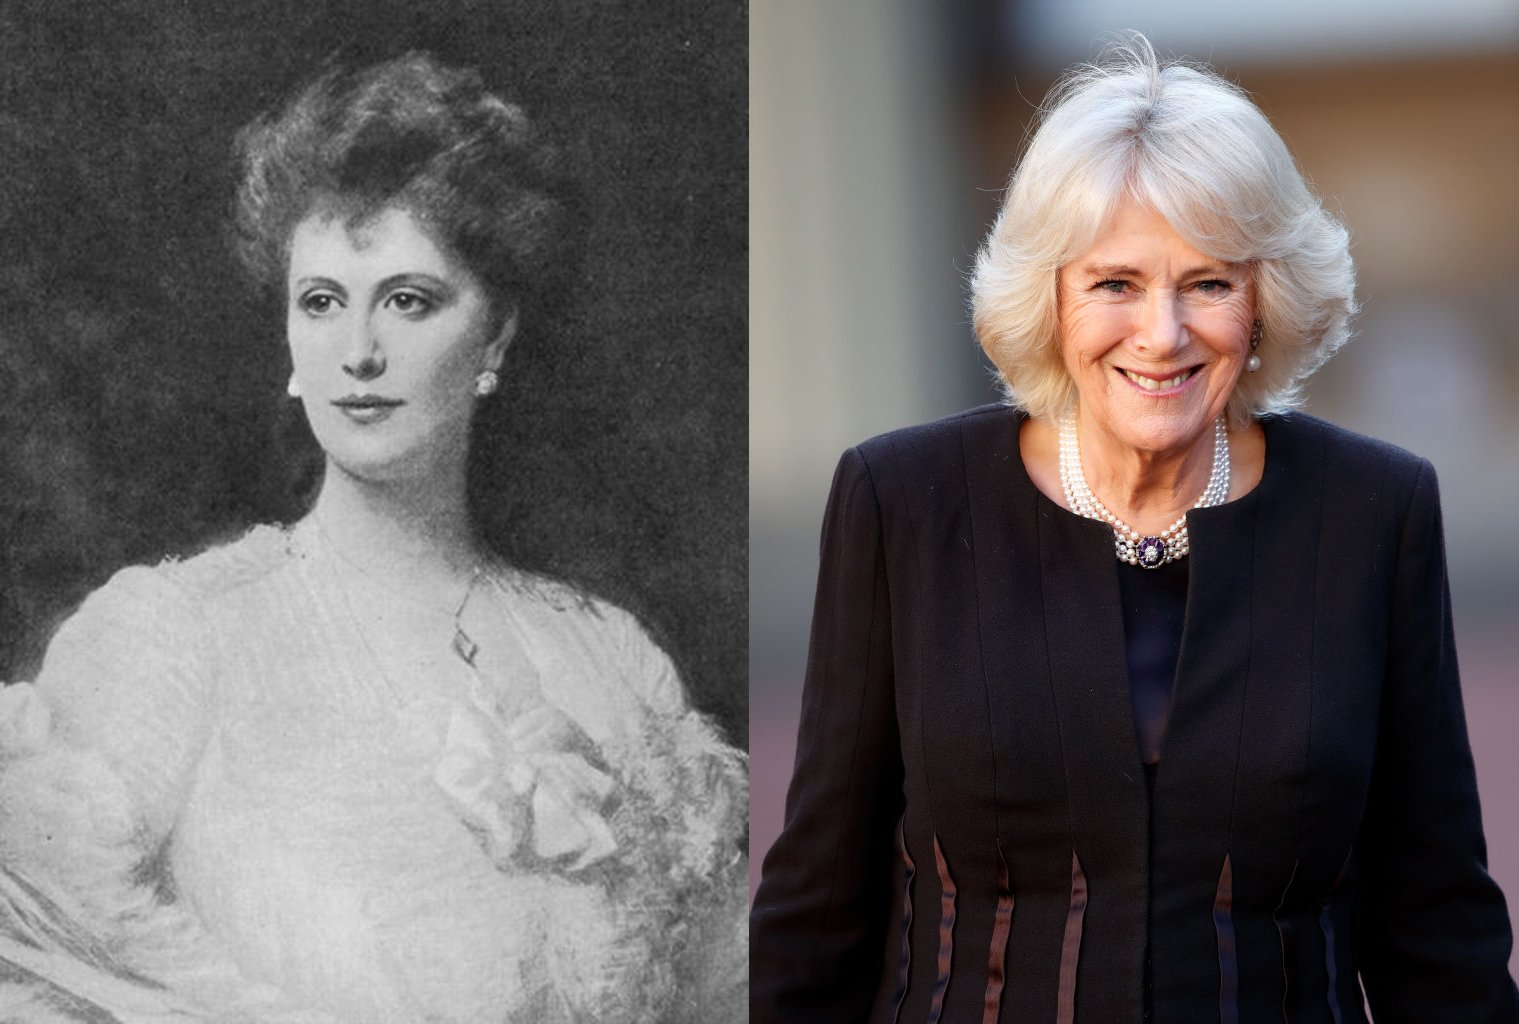 Alice Keppel and Camilla Parker Bowles. I Image: Wikimedia Commons/ Getty Images.